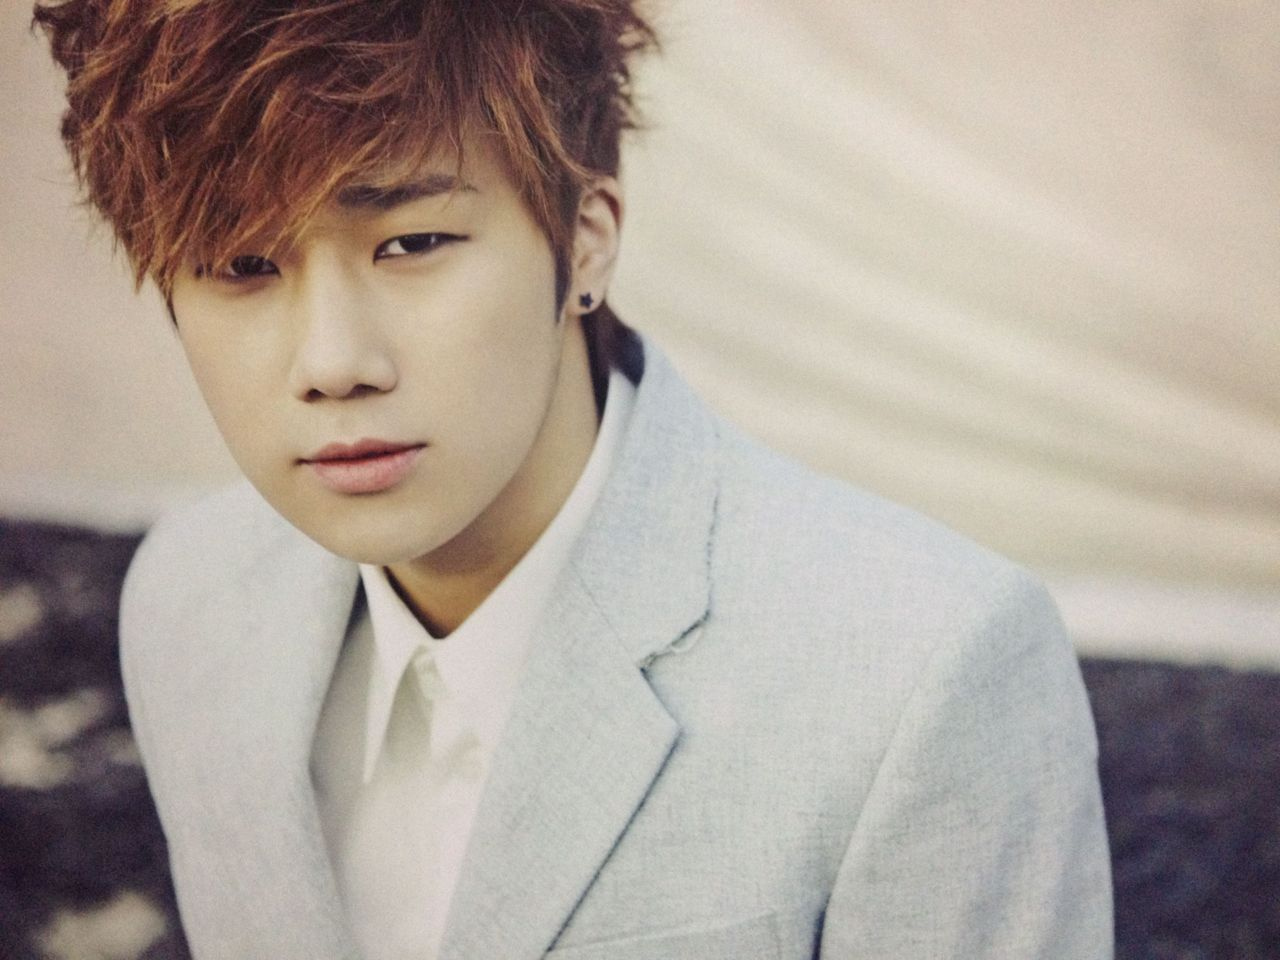 Sunggyu! ♥ - Sunggyu / Sungkyu Wallpaper (35986534) - Fanpop